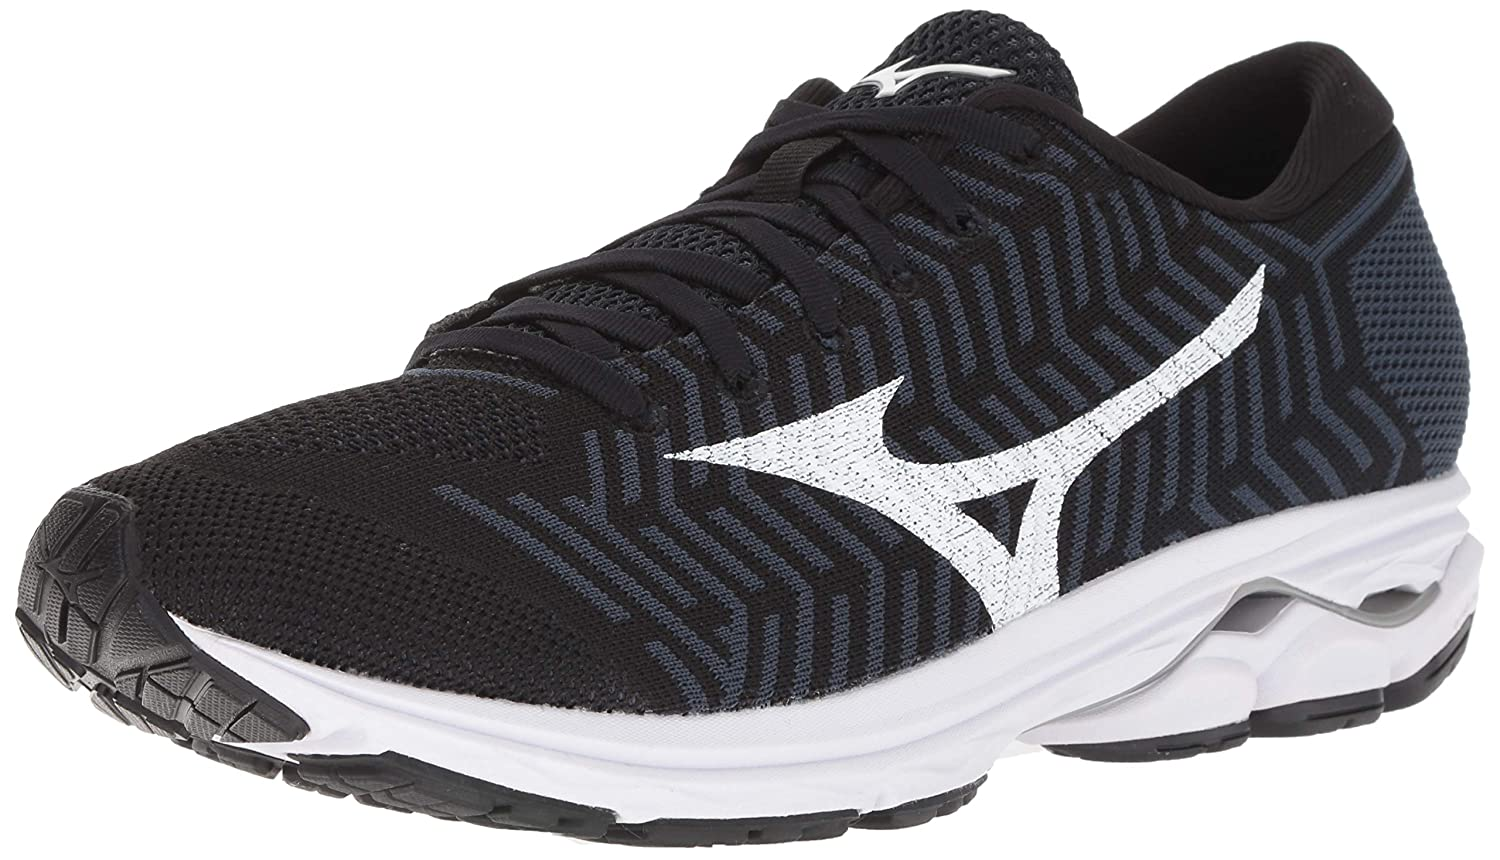 Getting to know Mizuno the technology of the Wave Rider running zapato